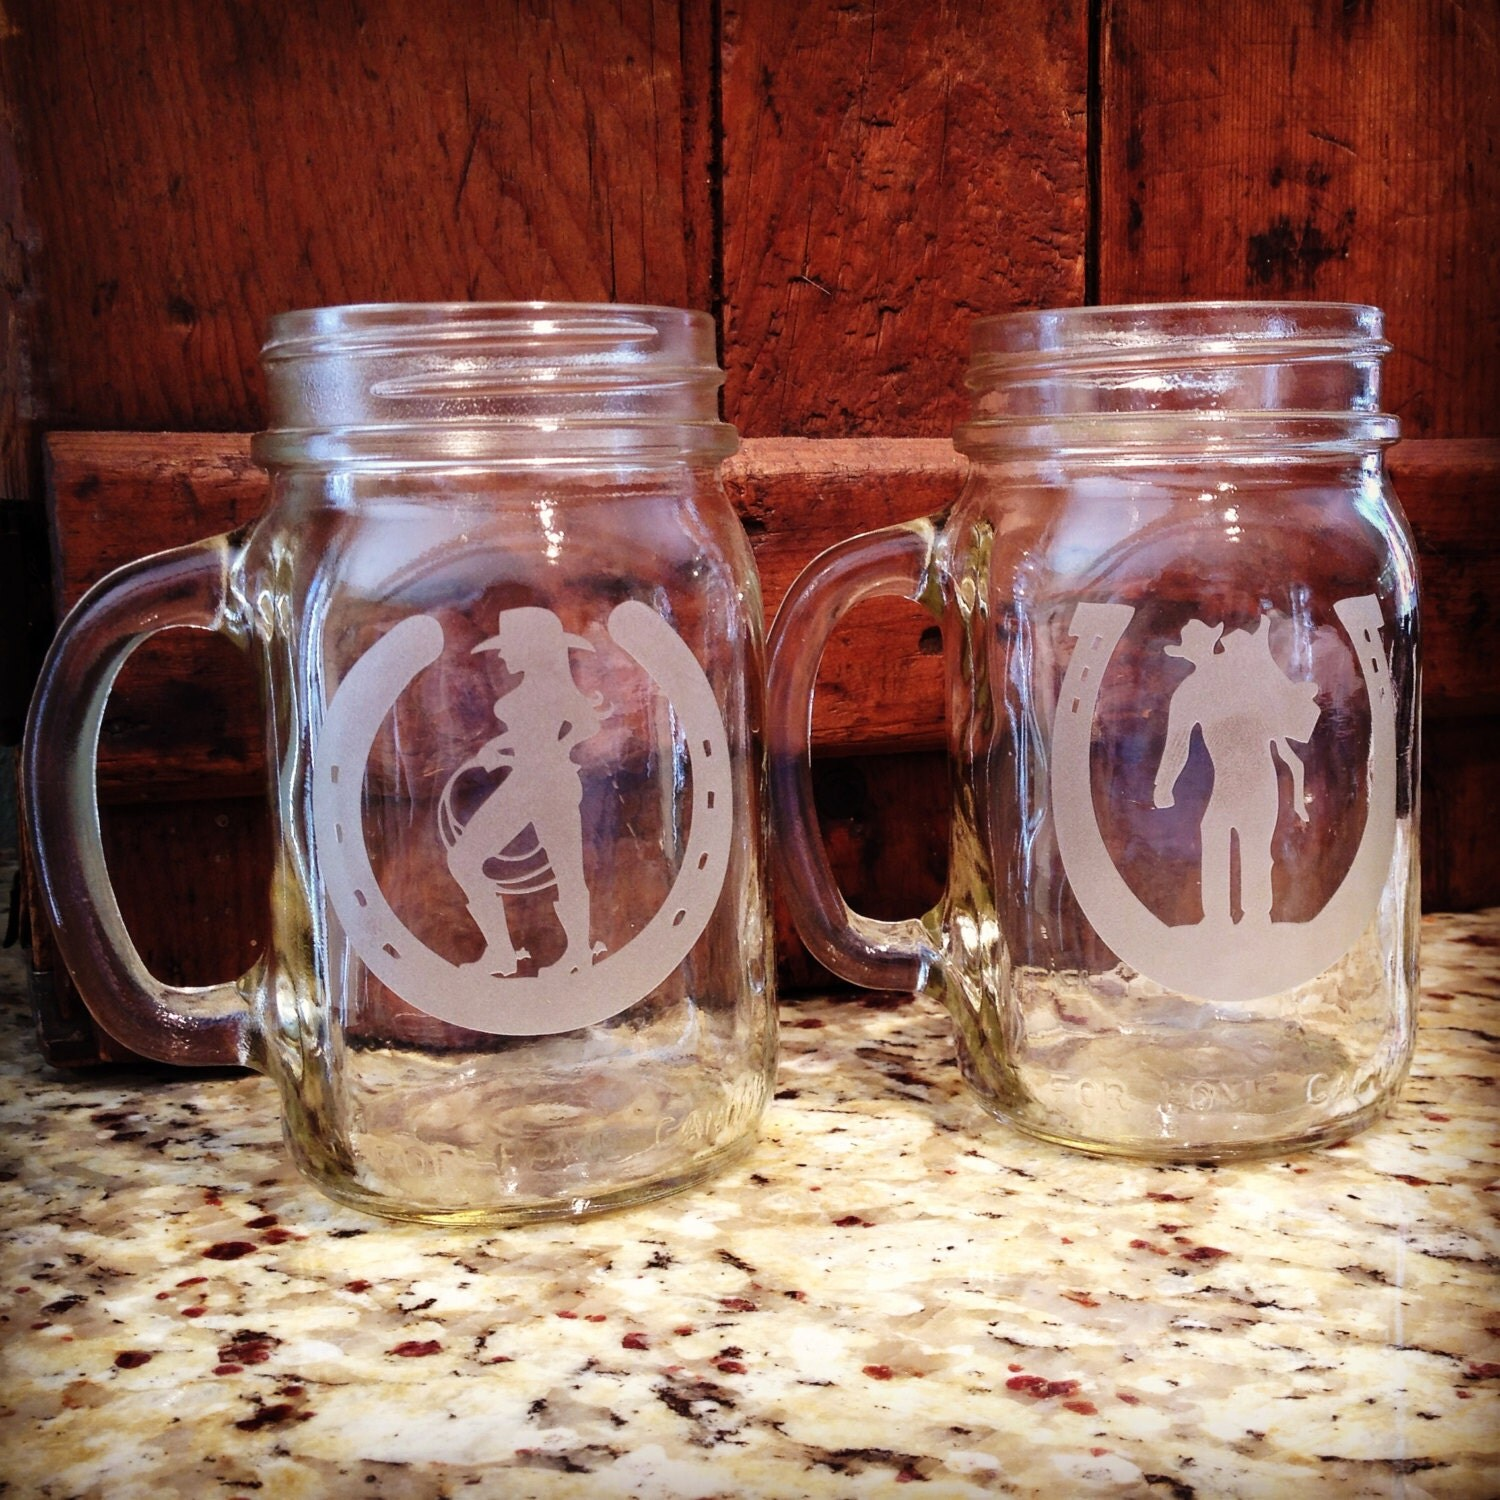 Rustic Jars For Wedding: Mason Jars Toasting Glasses Mason Jar Rustic Wedding Barn